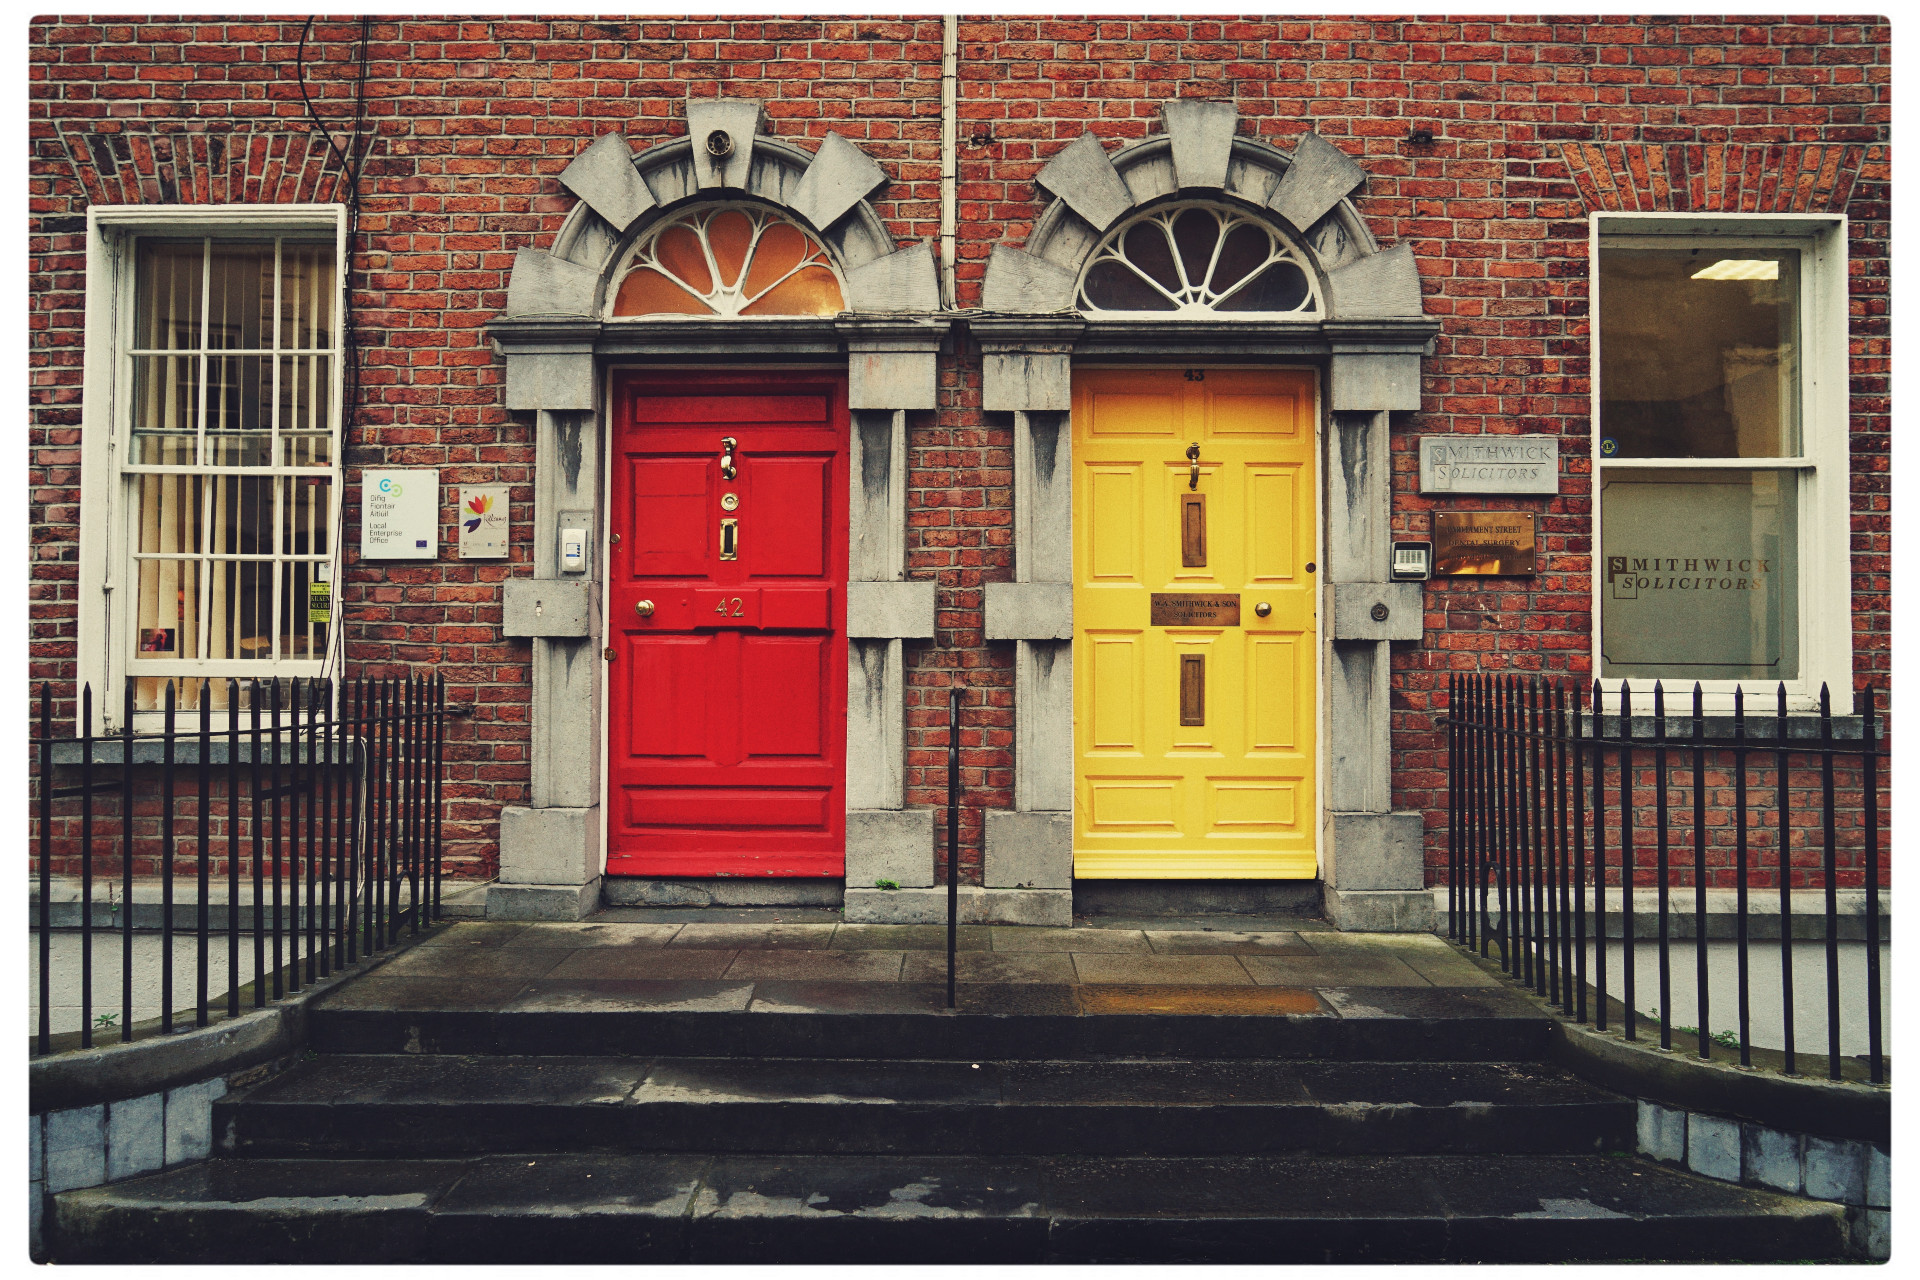 A red and yellow door next to each other